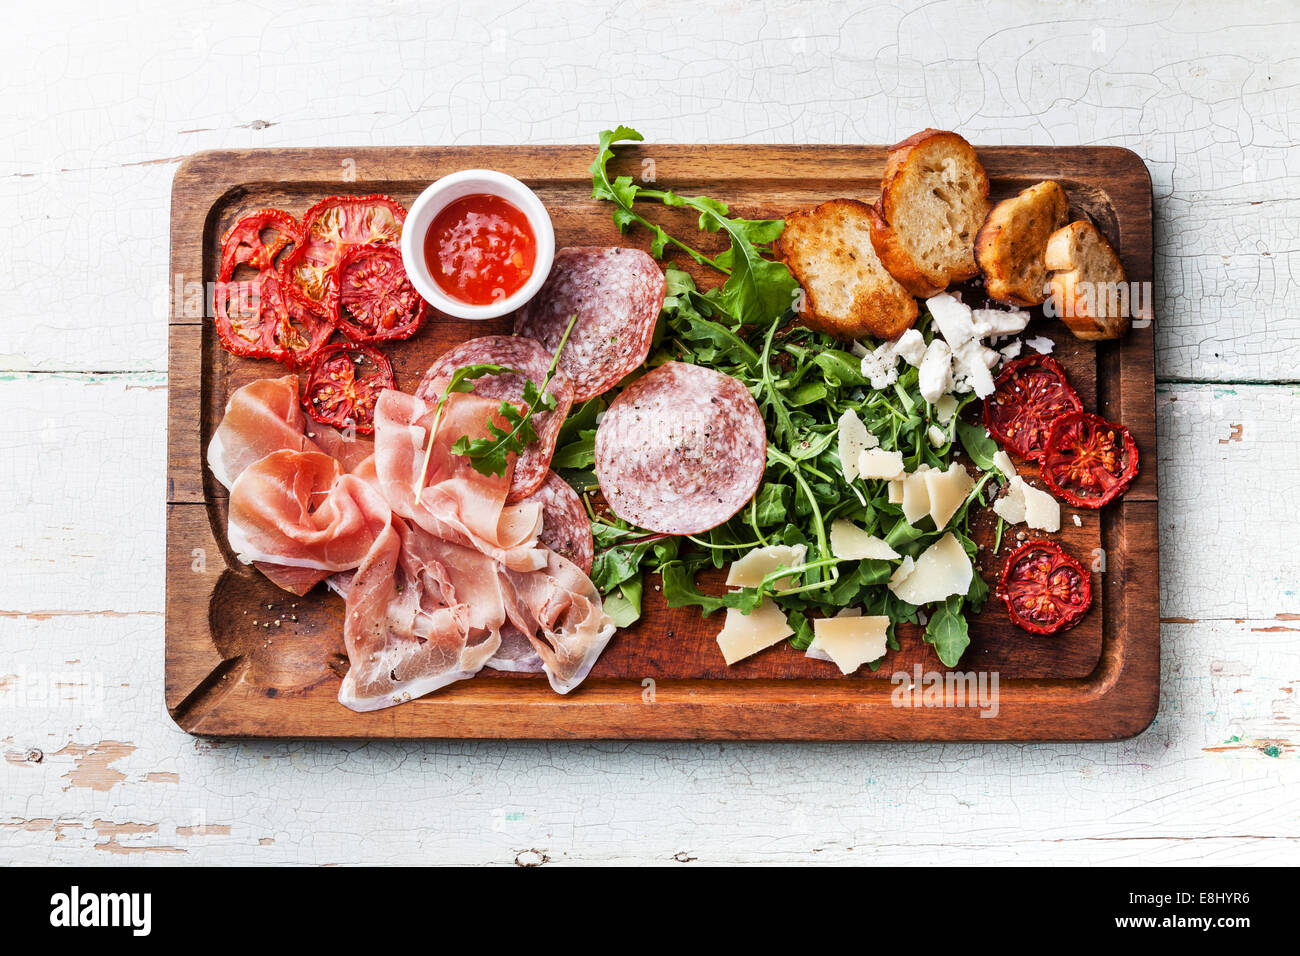 Cold meat plate and bread on wooden background - Stock Image